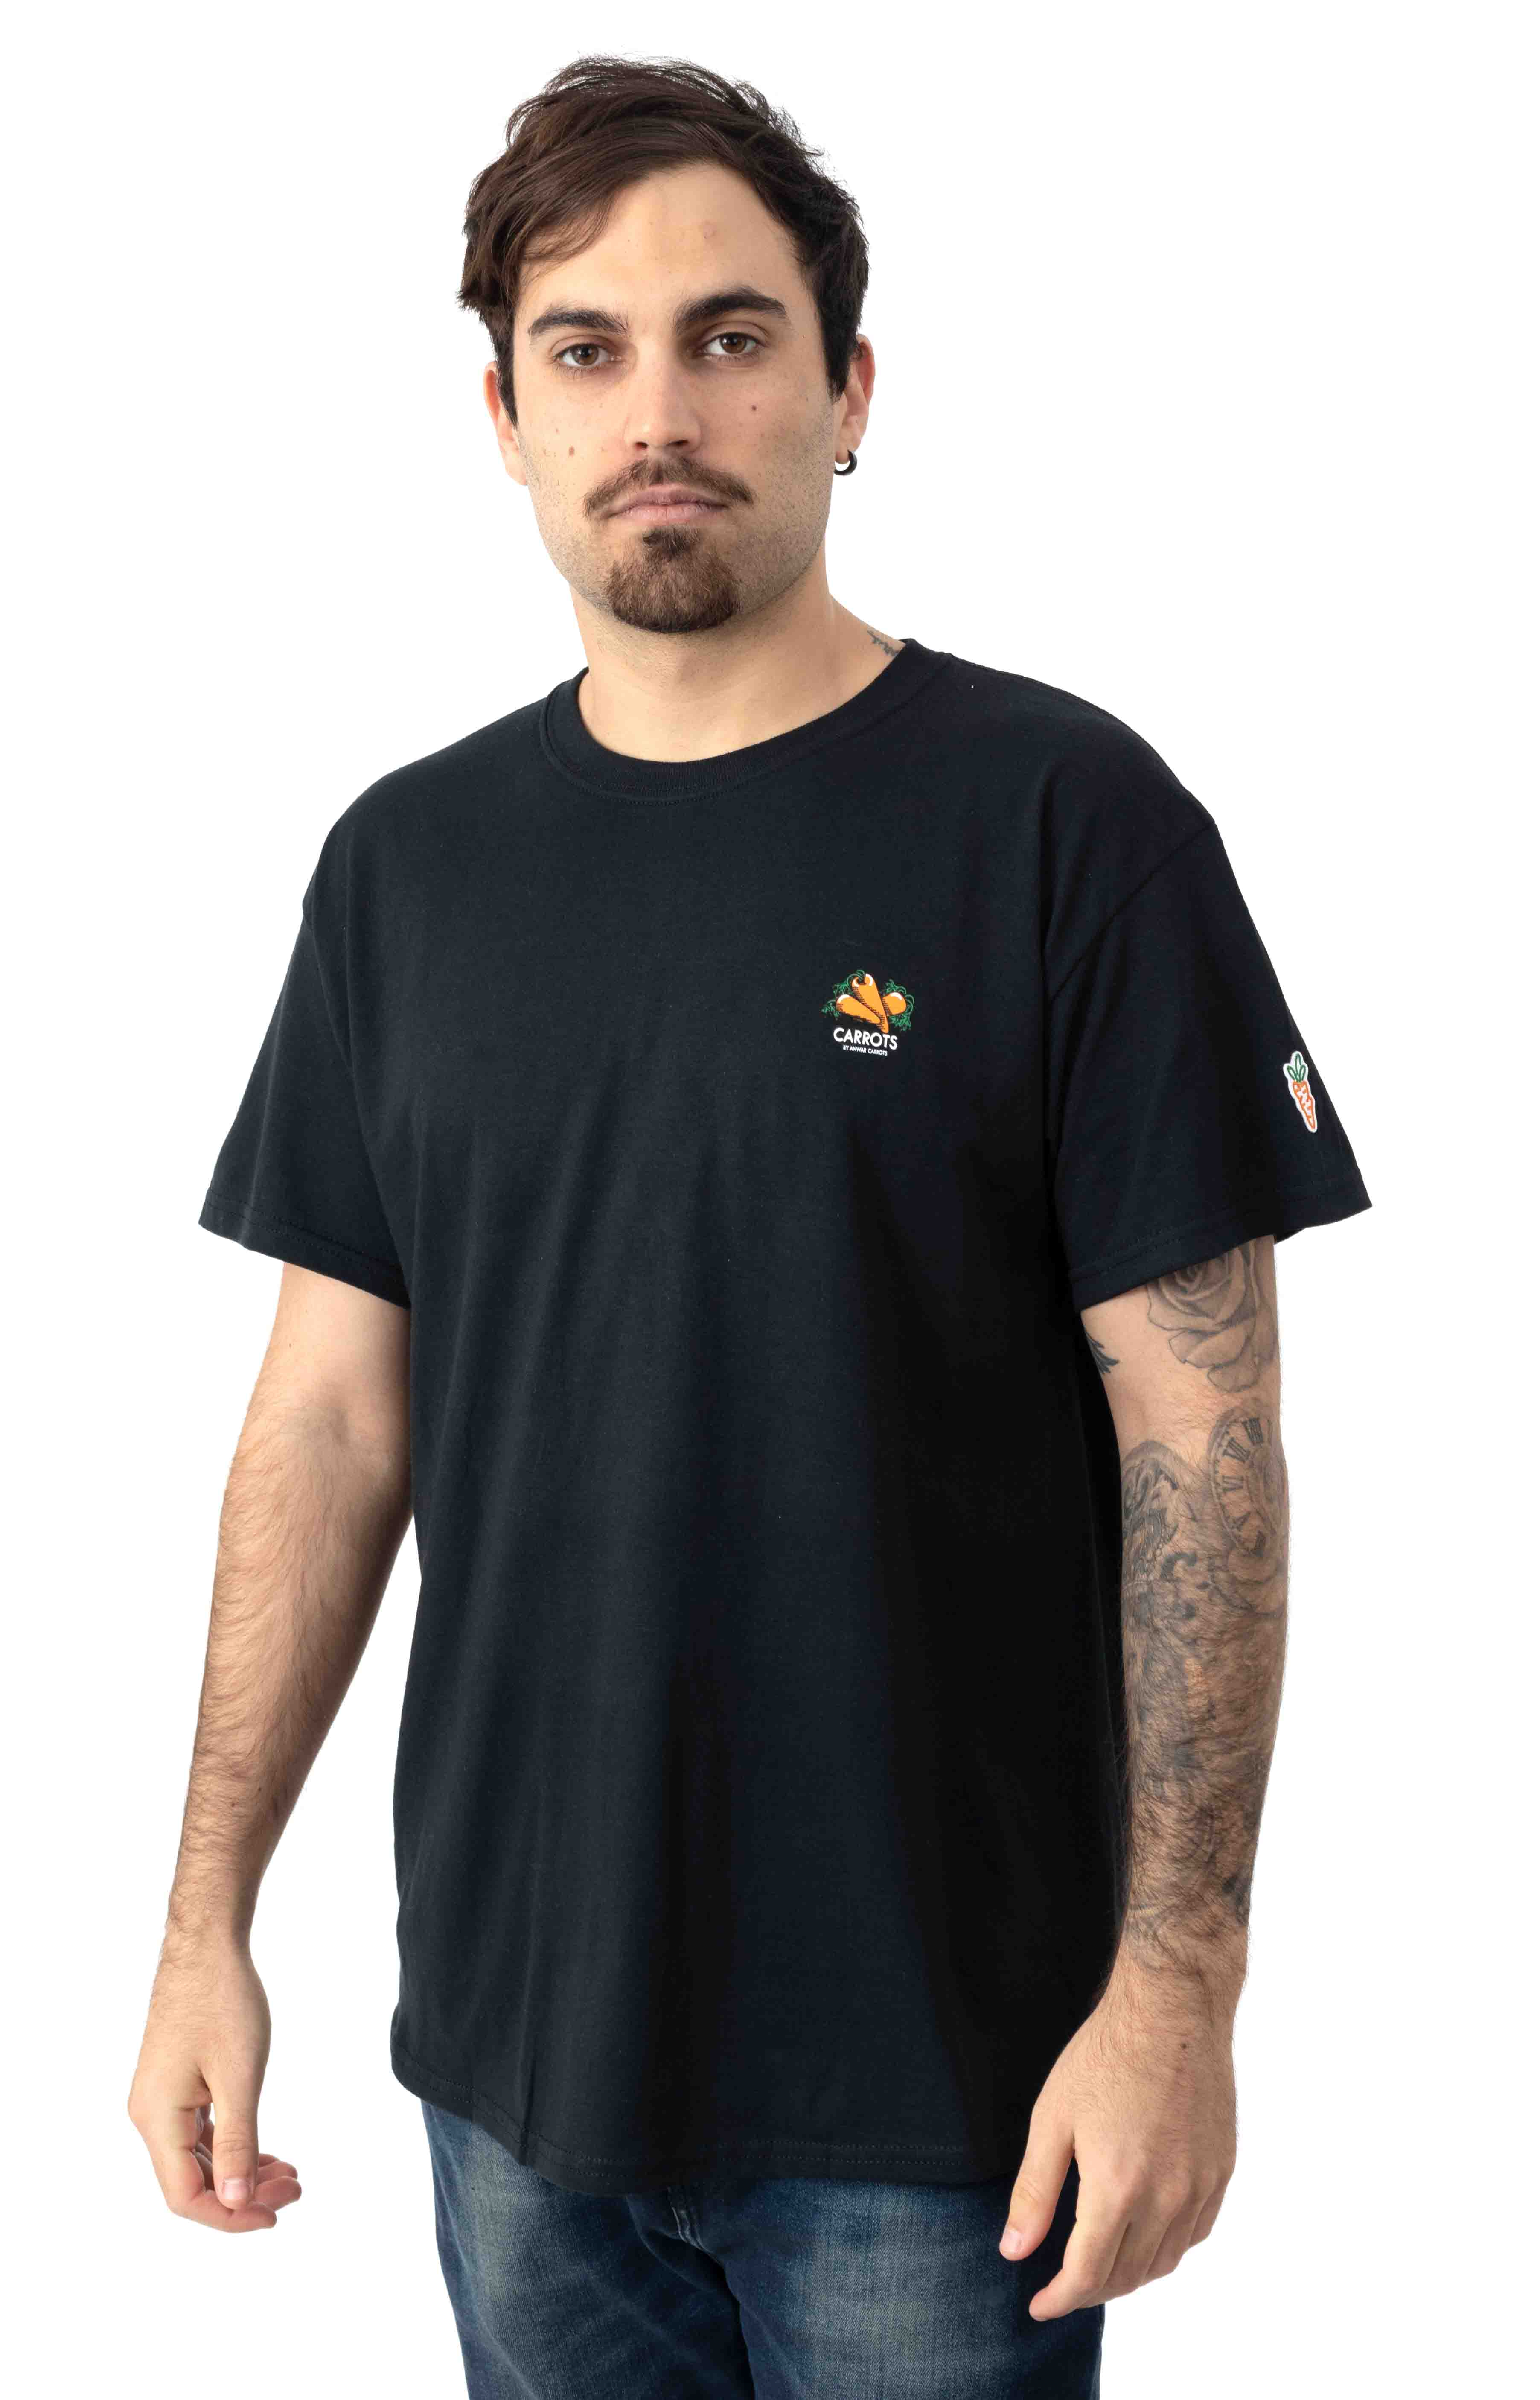 Loom T-Shirt - Black  2